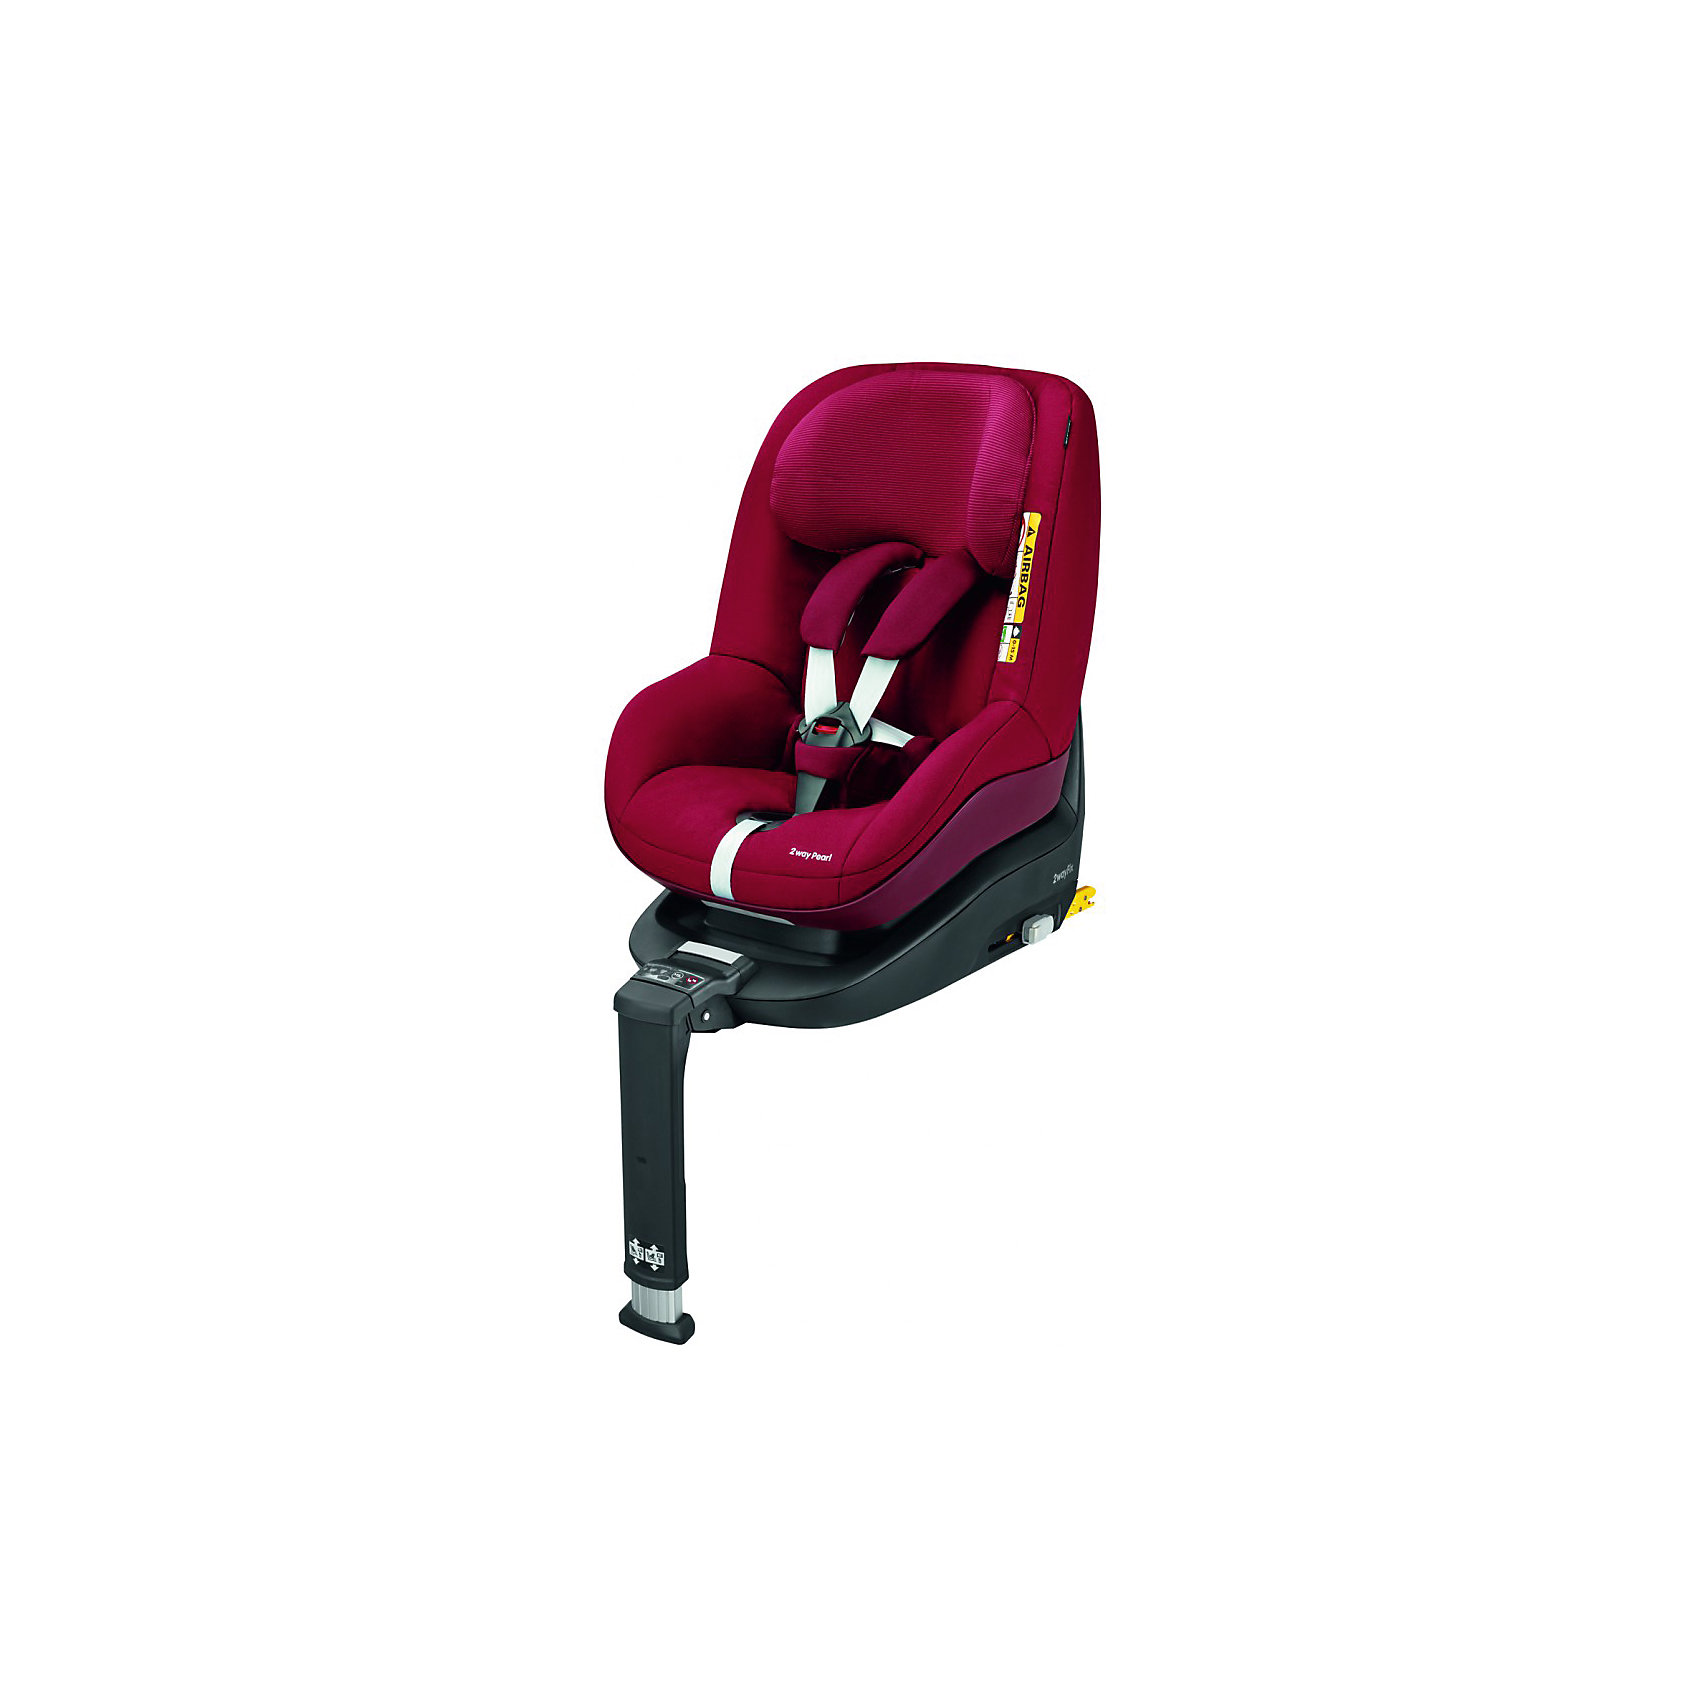 Автокресло 2wayPearl 9-18 кг., Maxi-Cosi, Robin Red